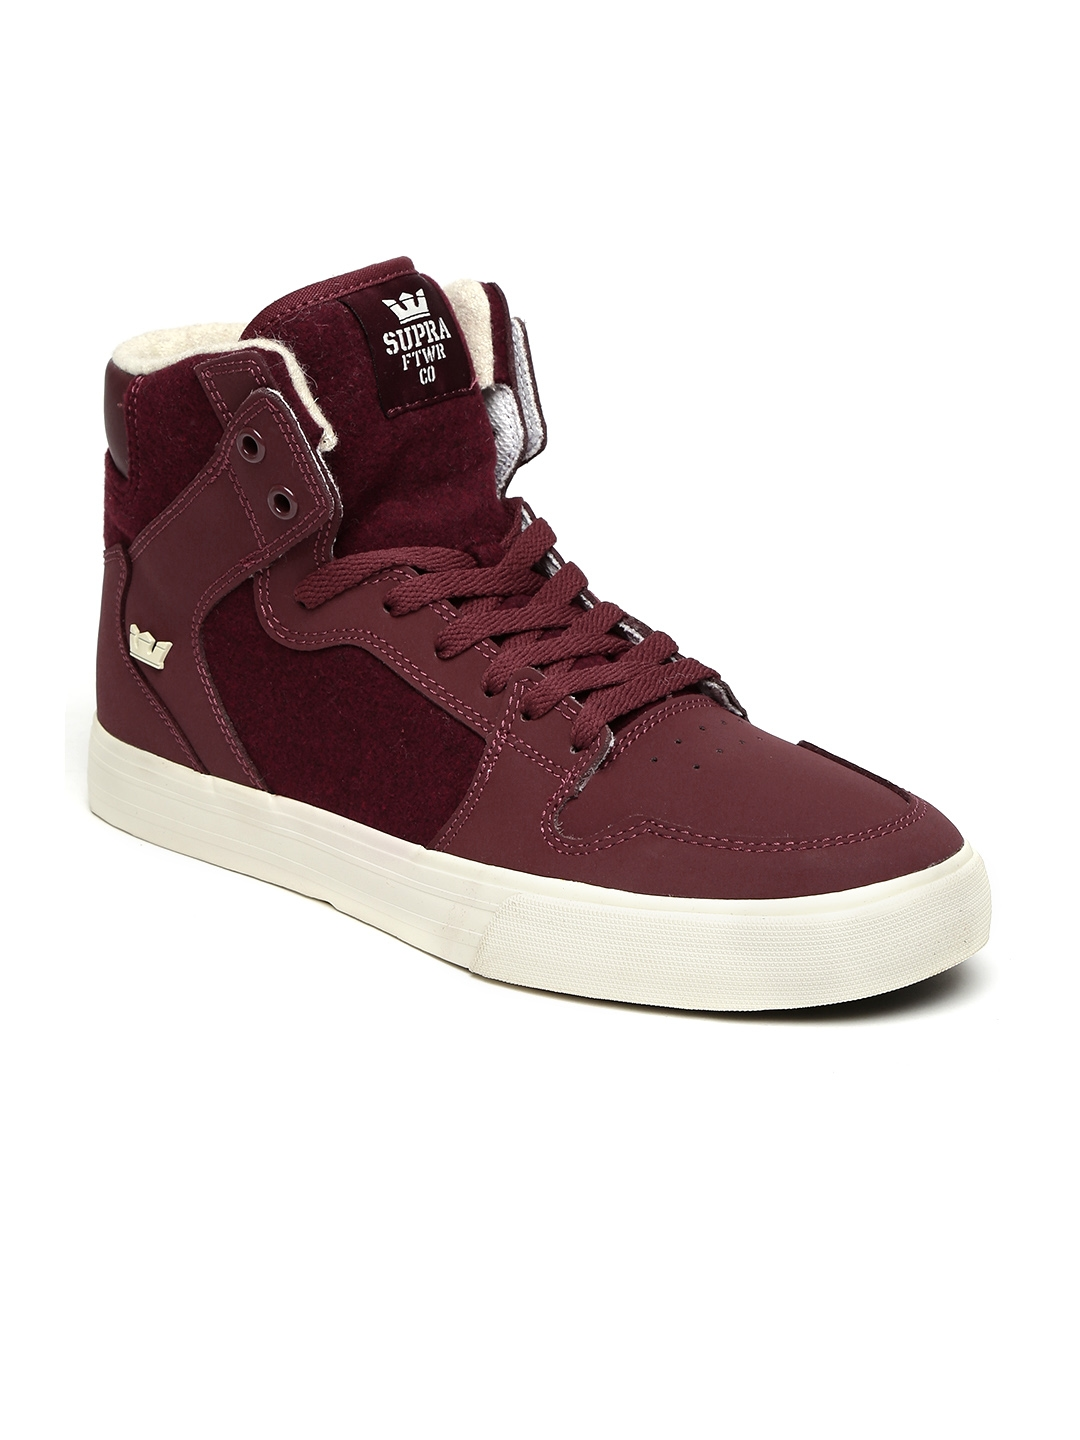 2467af91a089 Buy Supra Men Burgundy Solid Vaider Skate Shoes - Casual Shoes for ...